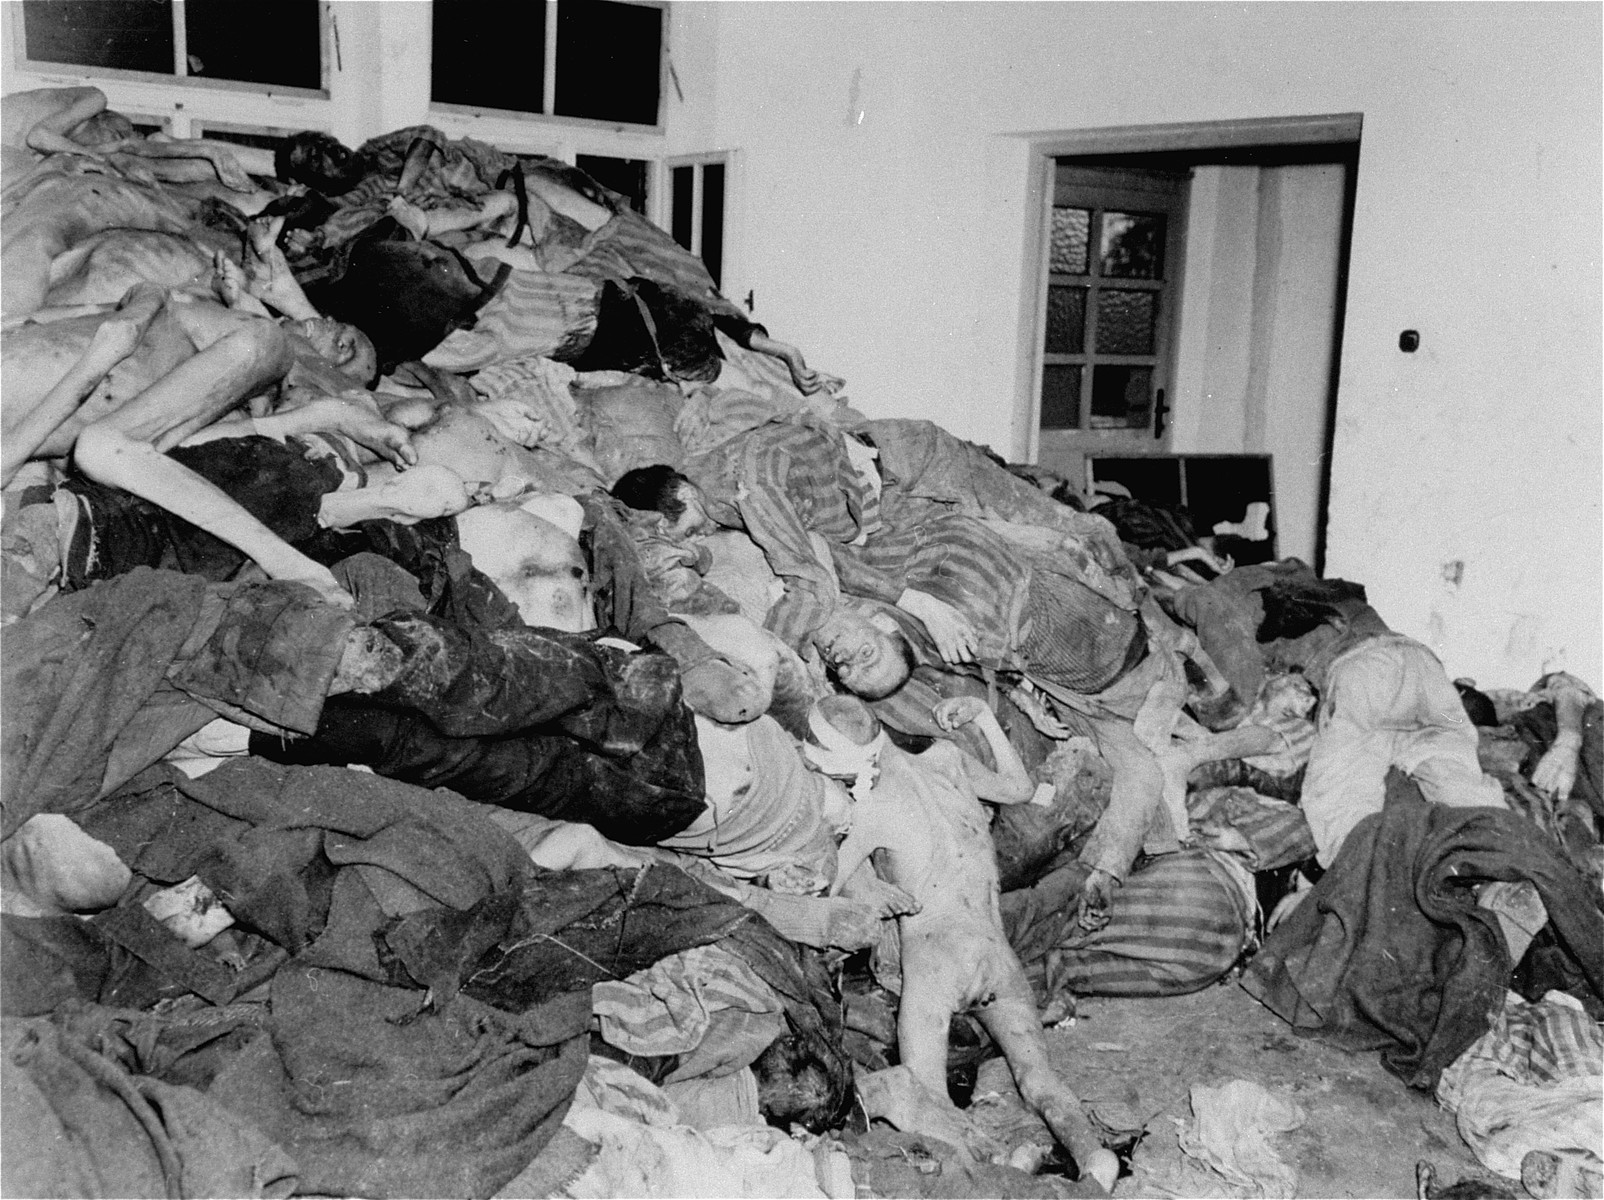 Corpses piled in the crematorium mortuary.  These rooms became so full of bodies that the SS staff and survivors began piling them behind the crematorium, where they were found by U.S. troops during the liberation of the camp.